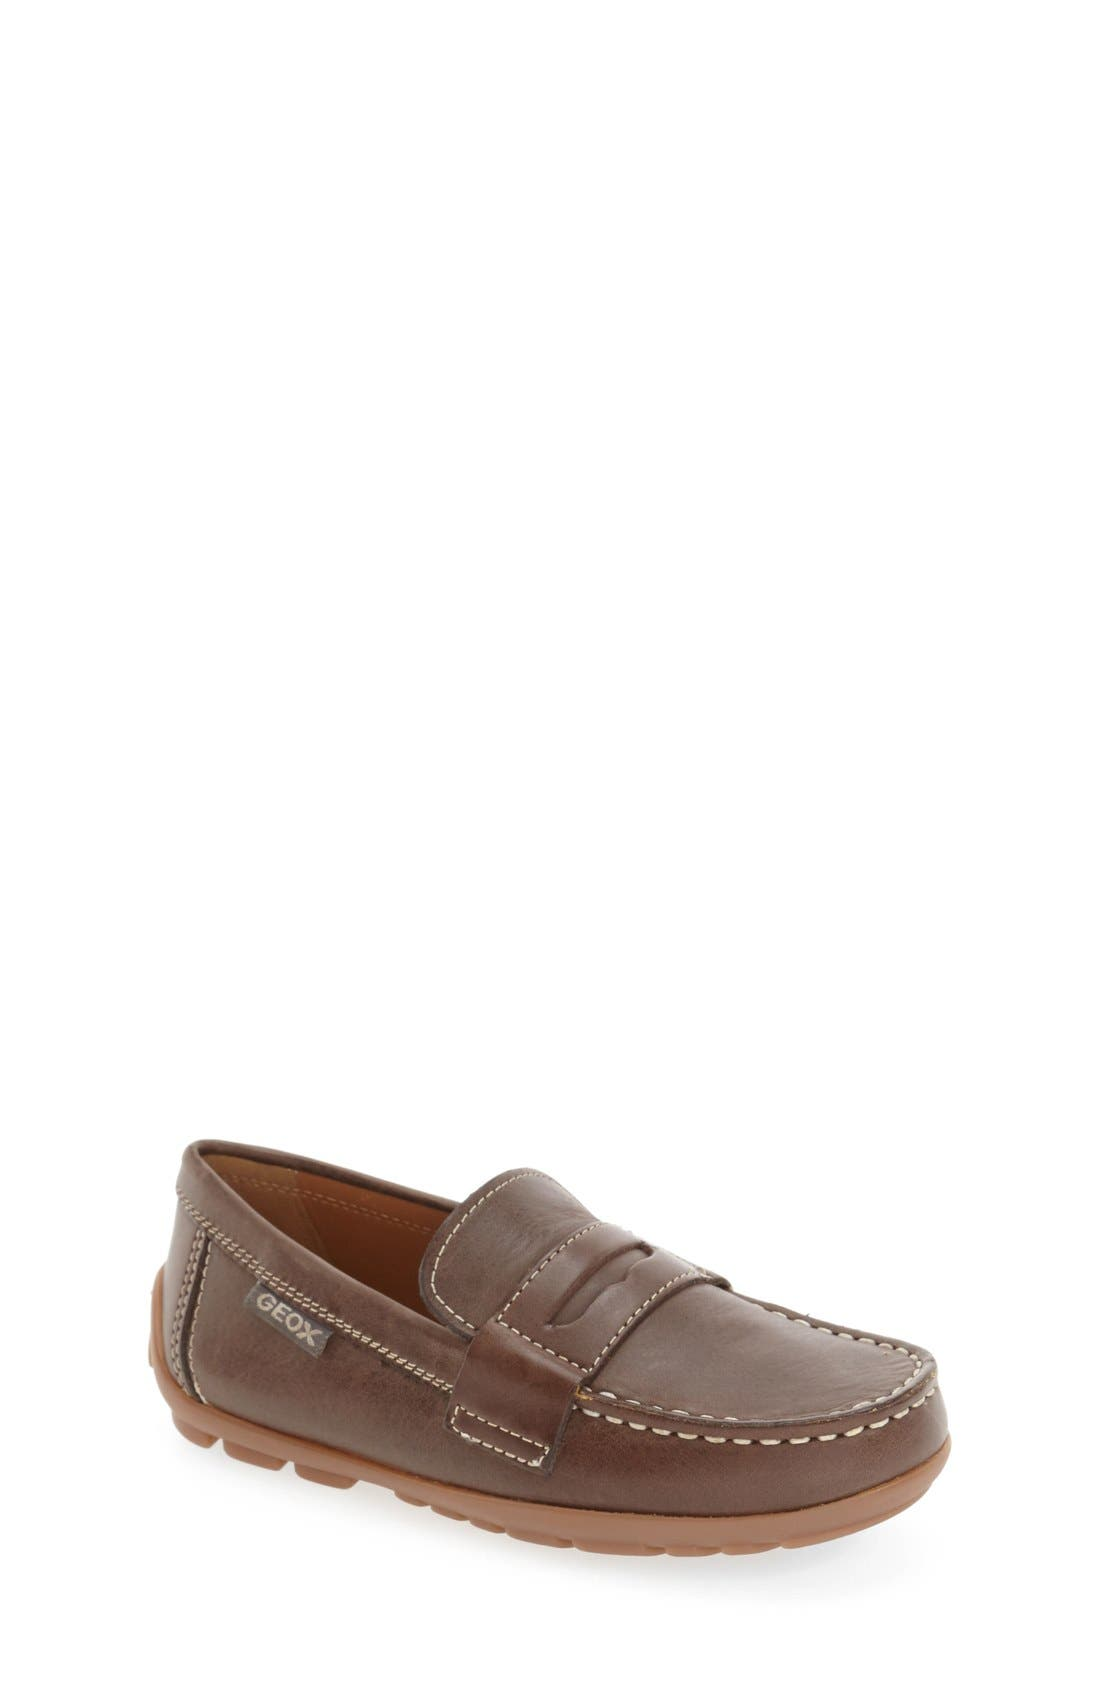 Geox 'Fast' Penny Loafer (Toddler, Little Kid & Big Kid)